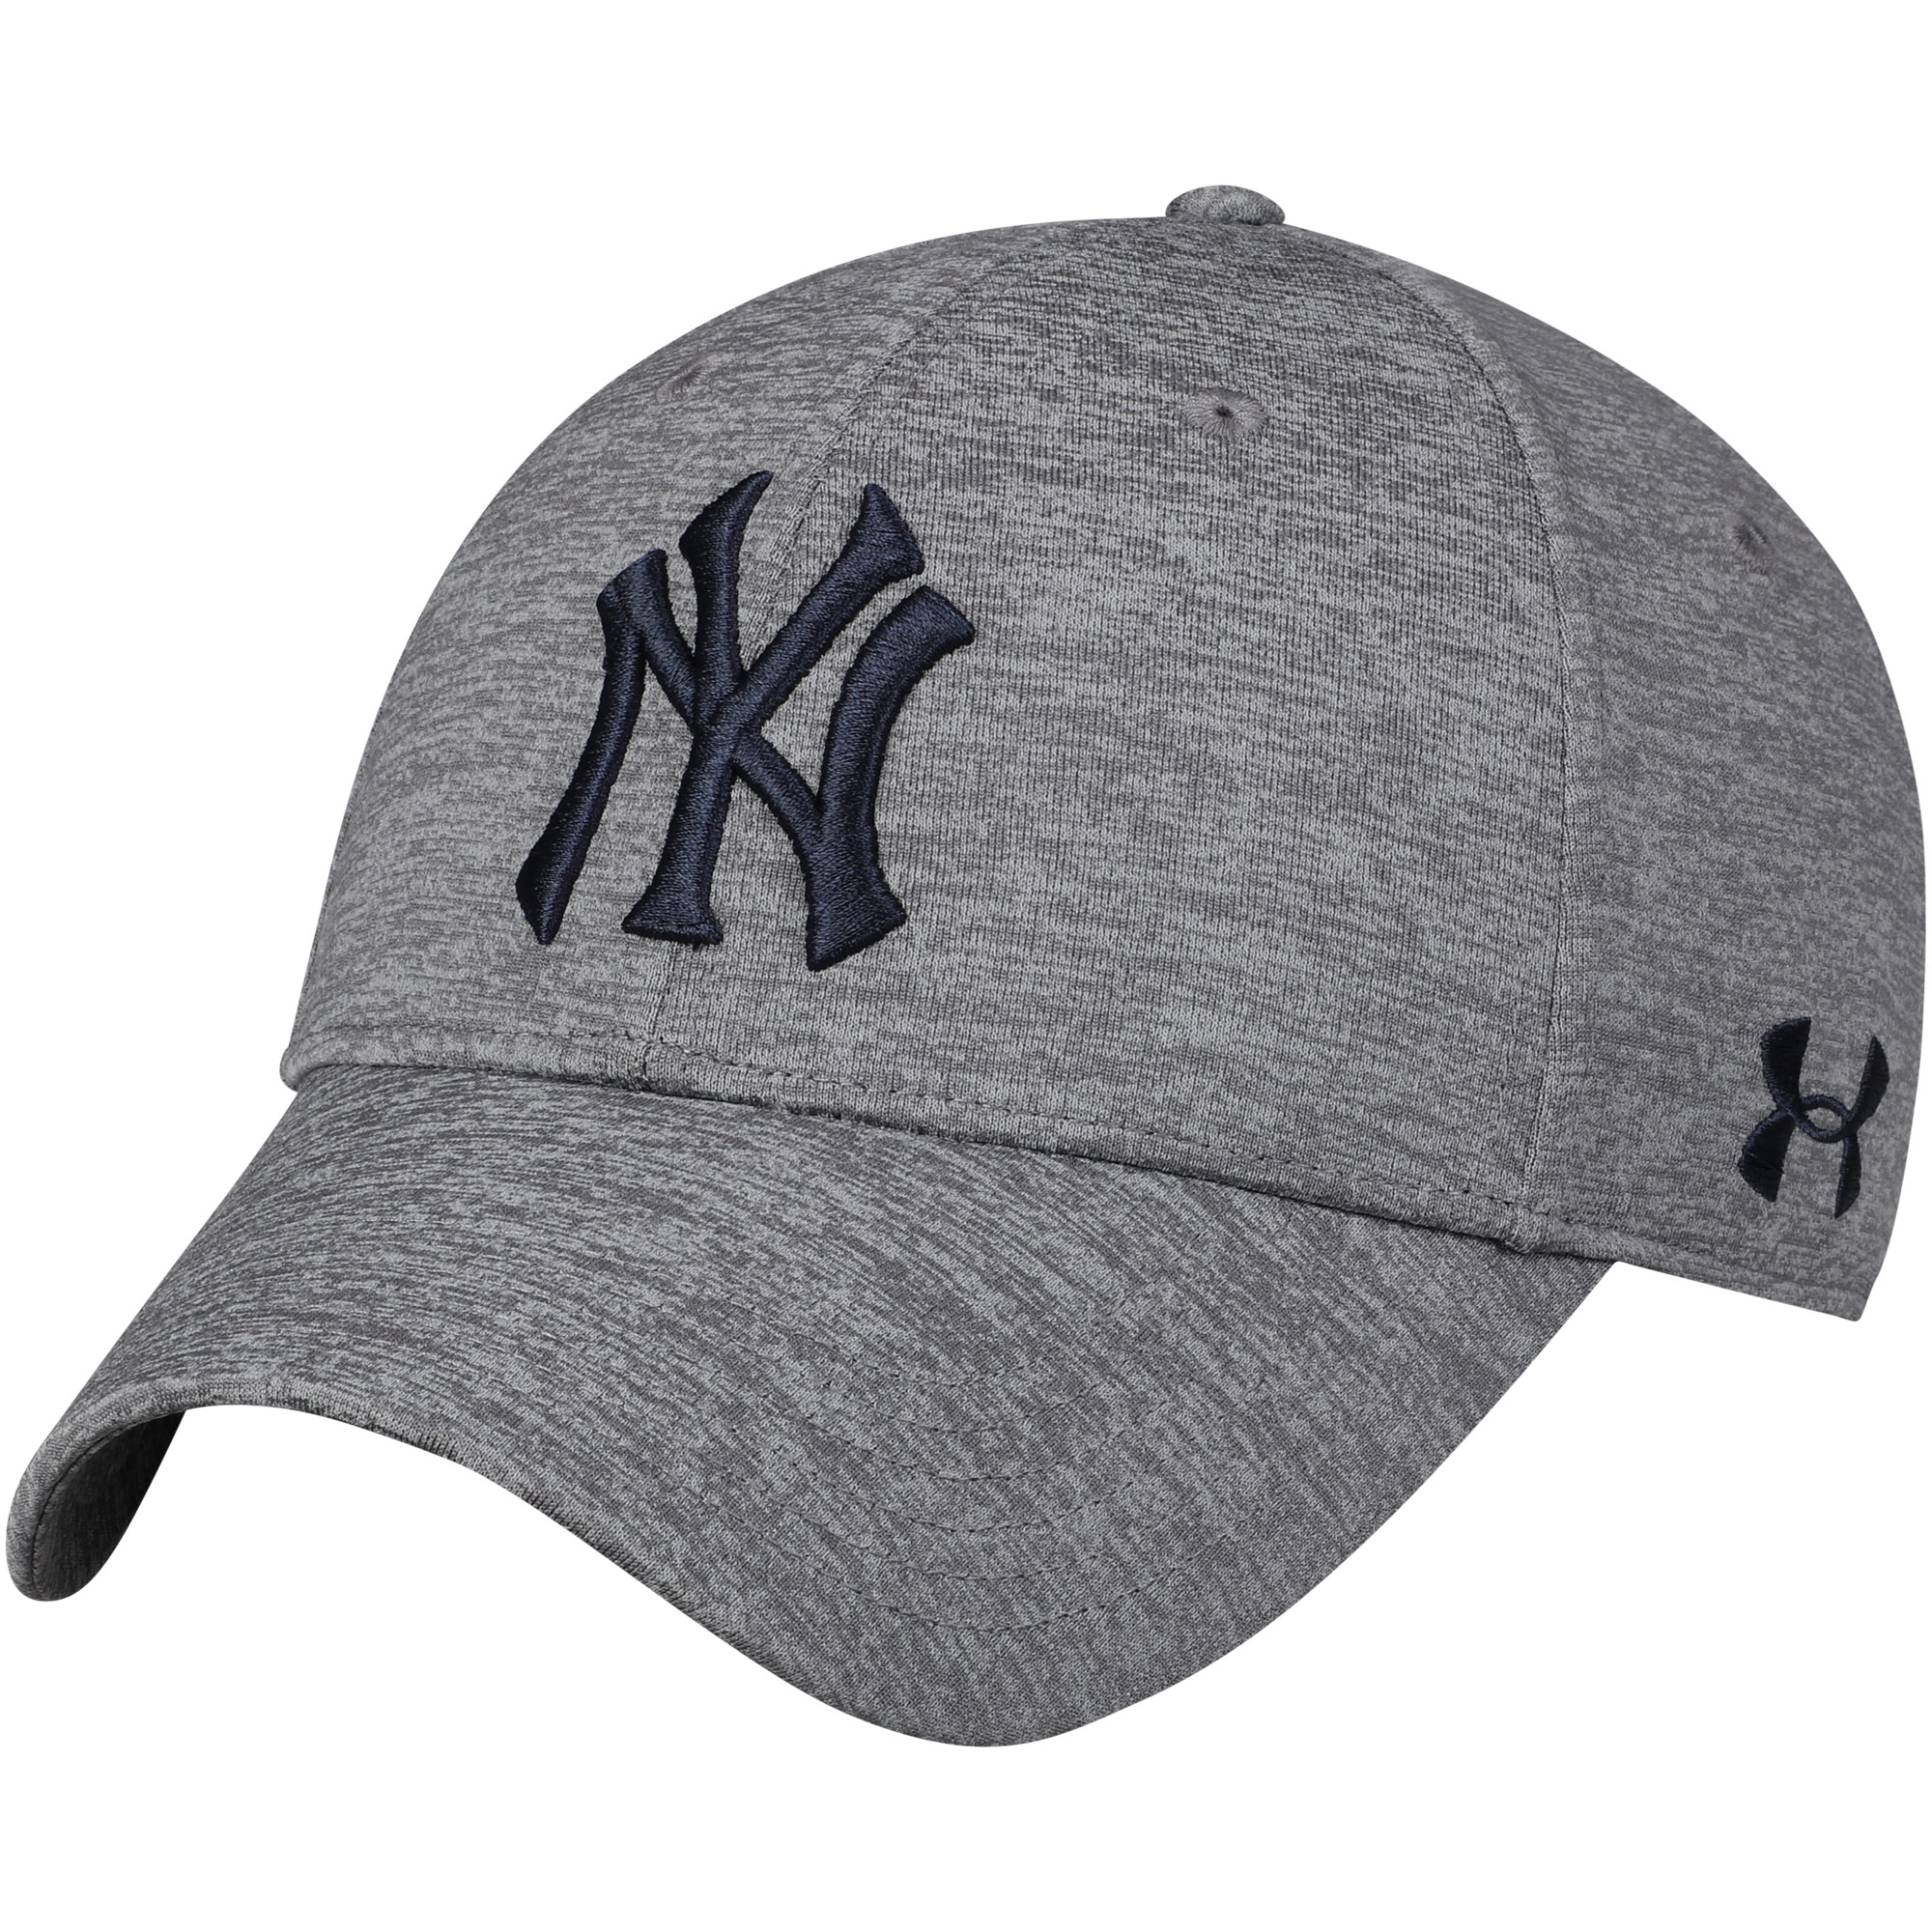 New York Yankees Under Armour Twist Closer Performance Snapback Adjustable Hat - Heathered Gray - OSFA